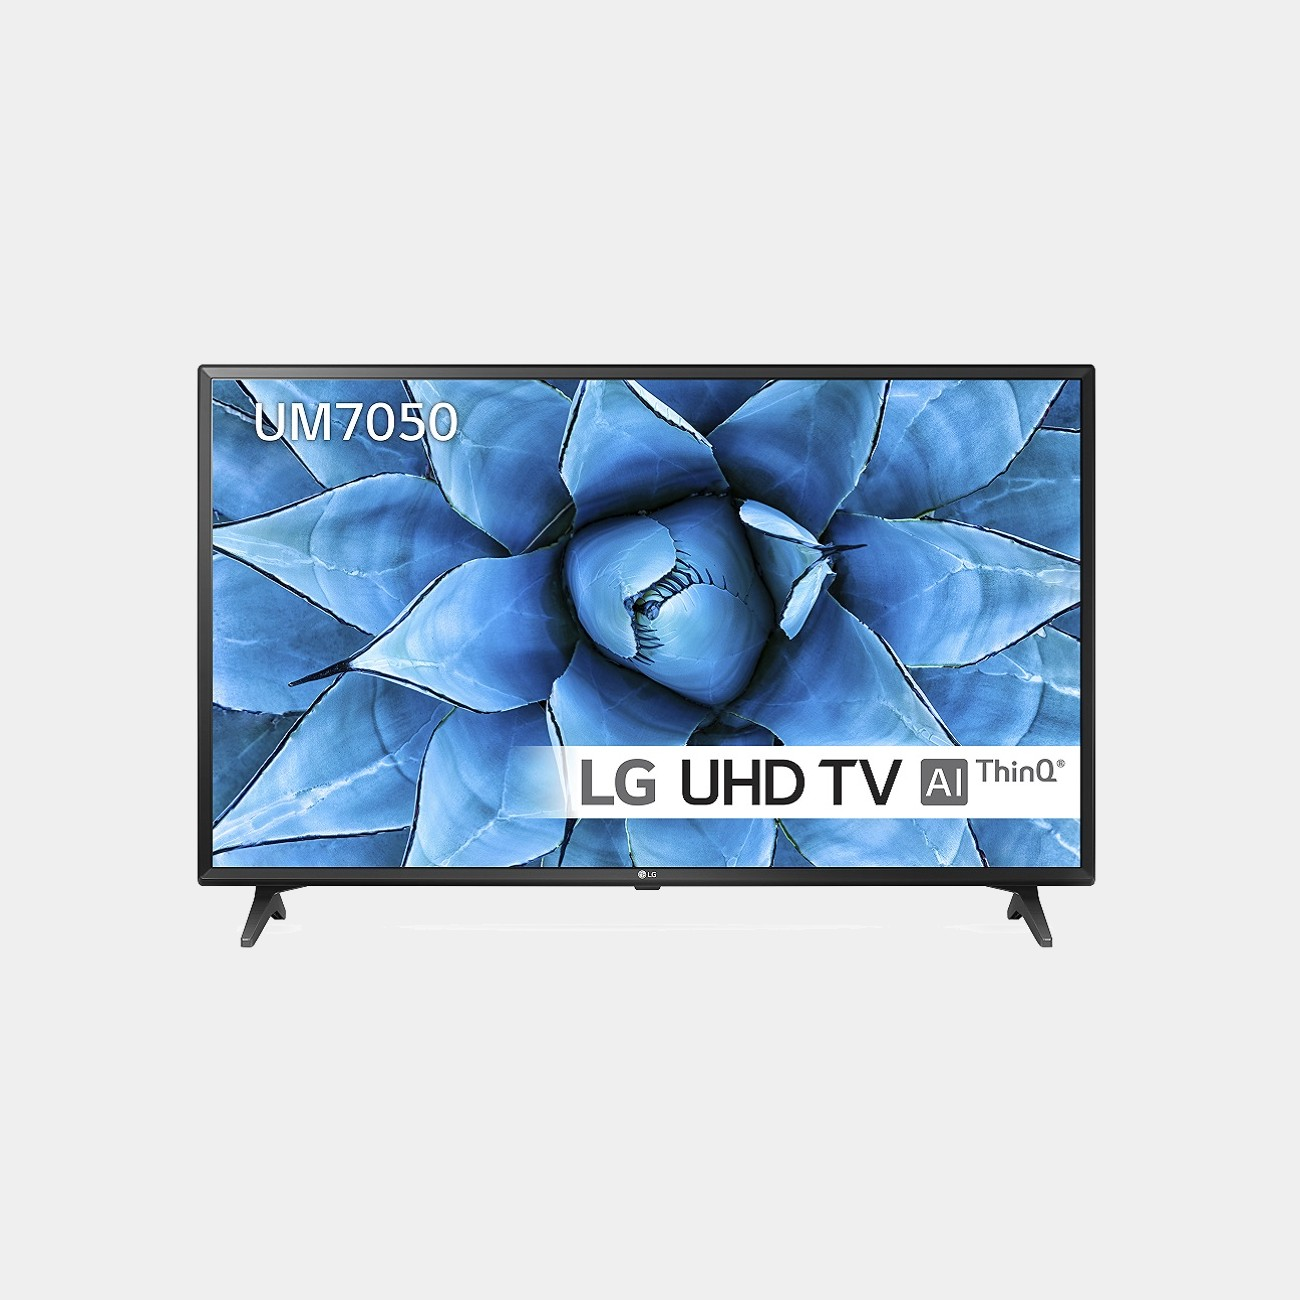 LG 49um7050 televisor Ultra HD Smart 1600PMI IA